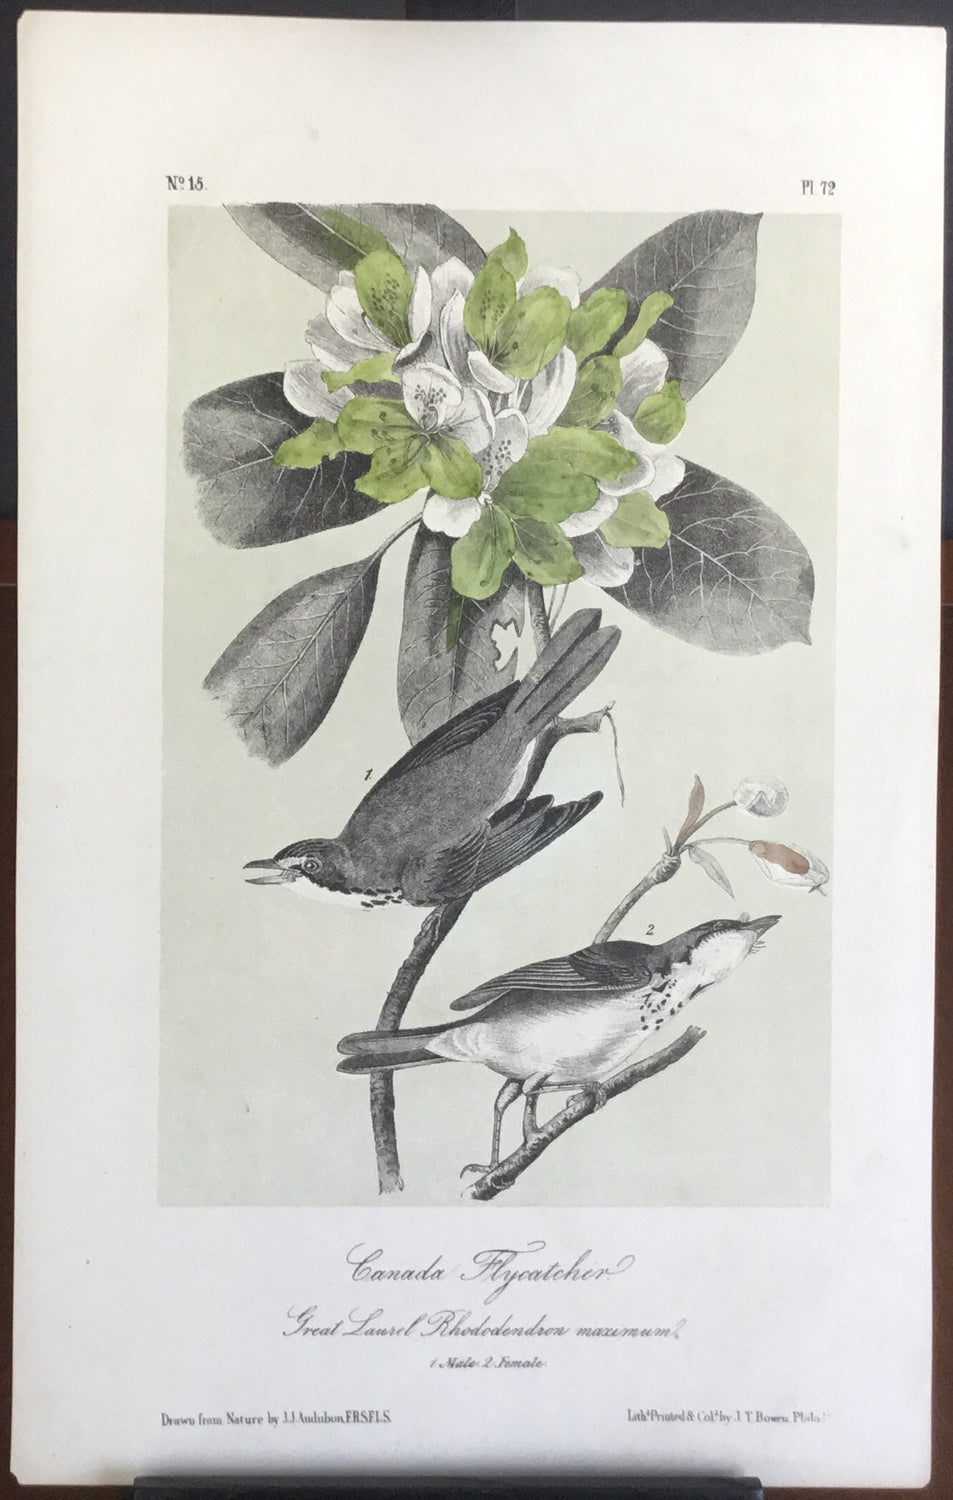 Audubon Octavo Canada Flycatcher, plate 72, uncolored test sheet. 7 x 11